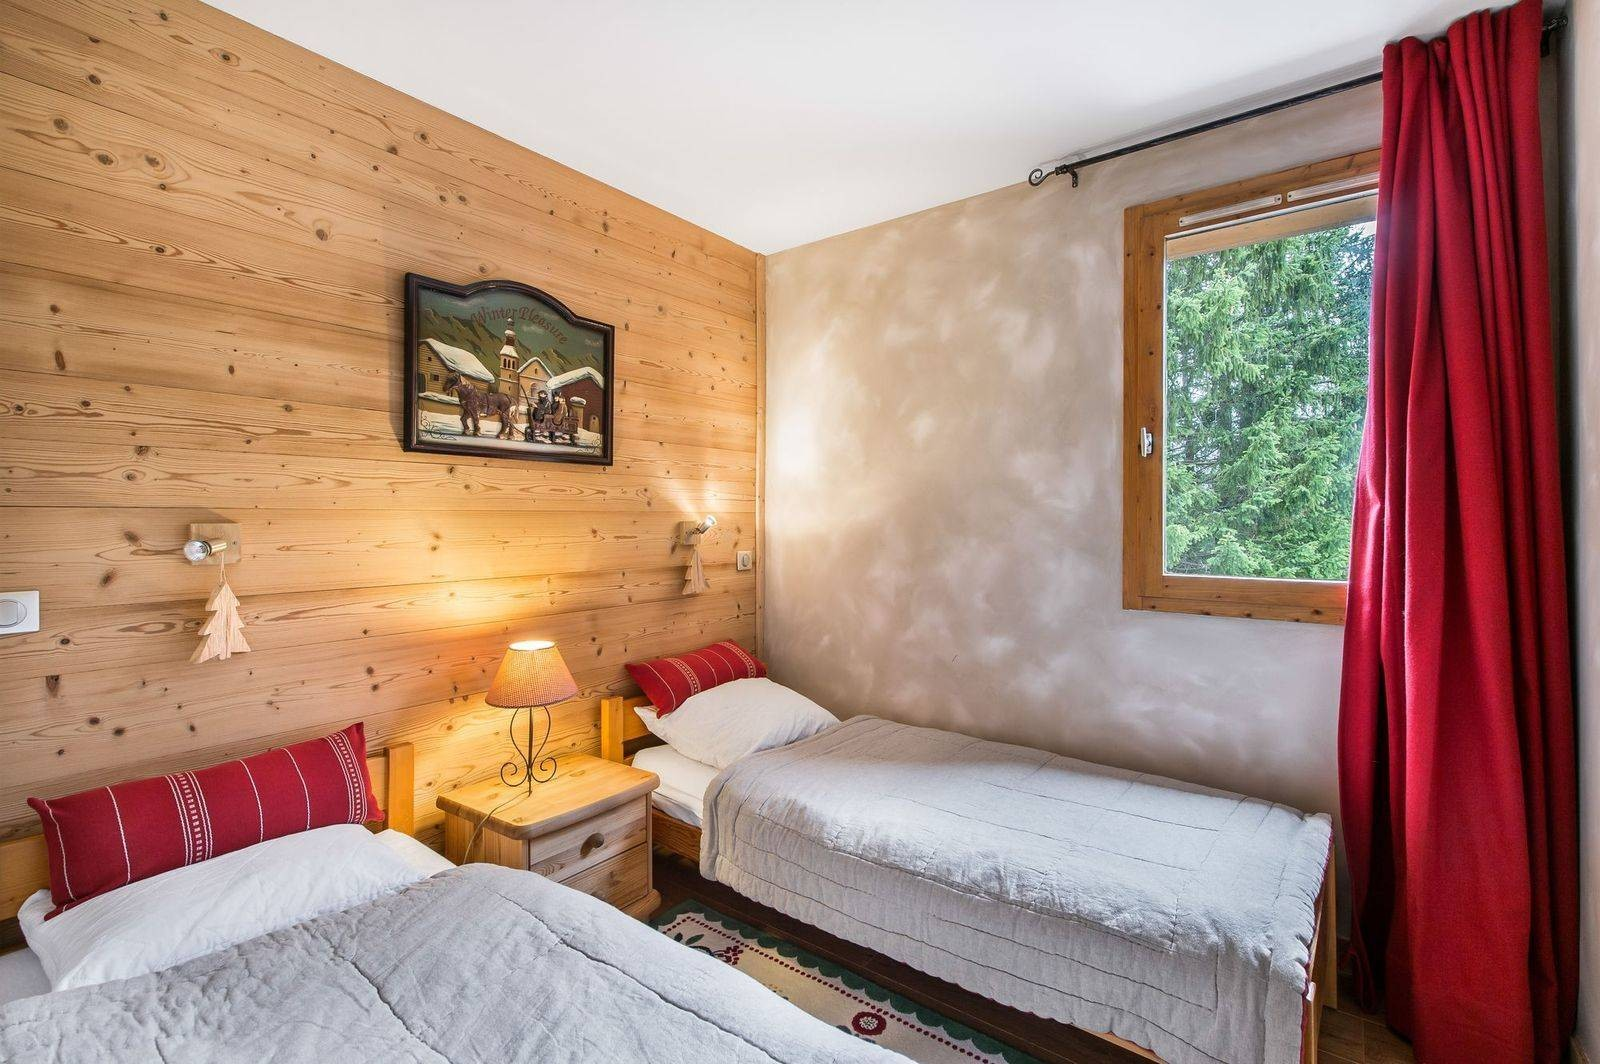 Courchevel 1650 Location Appartement Luxe Temadere Chambre 2